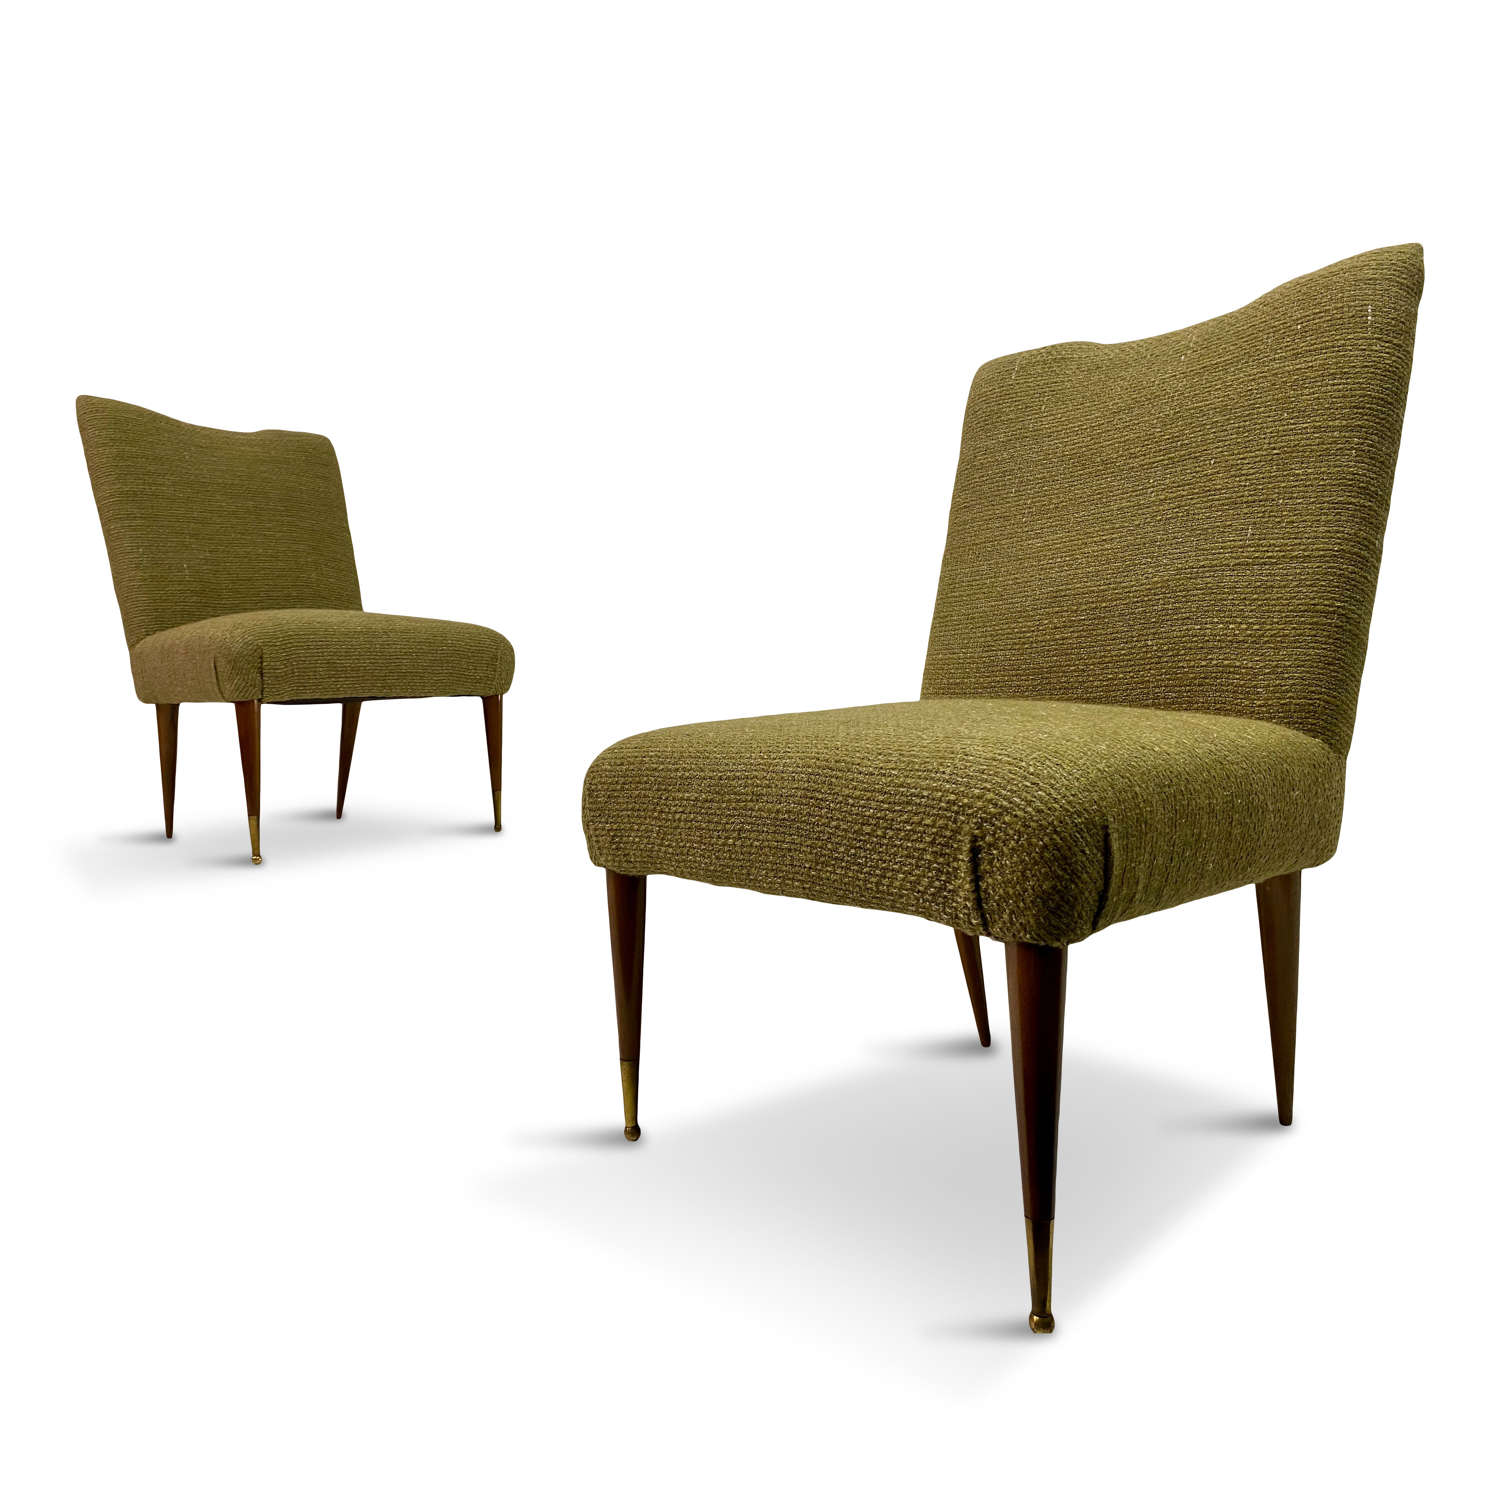 Pair of 1950s Italian Slipper Chairs in Green Wool and Linen